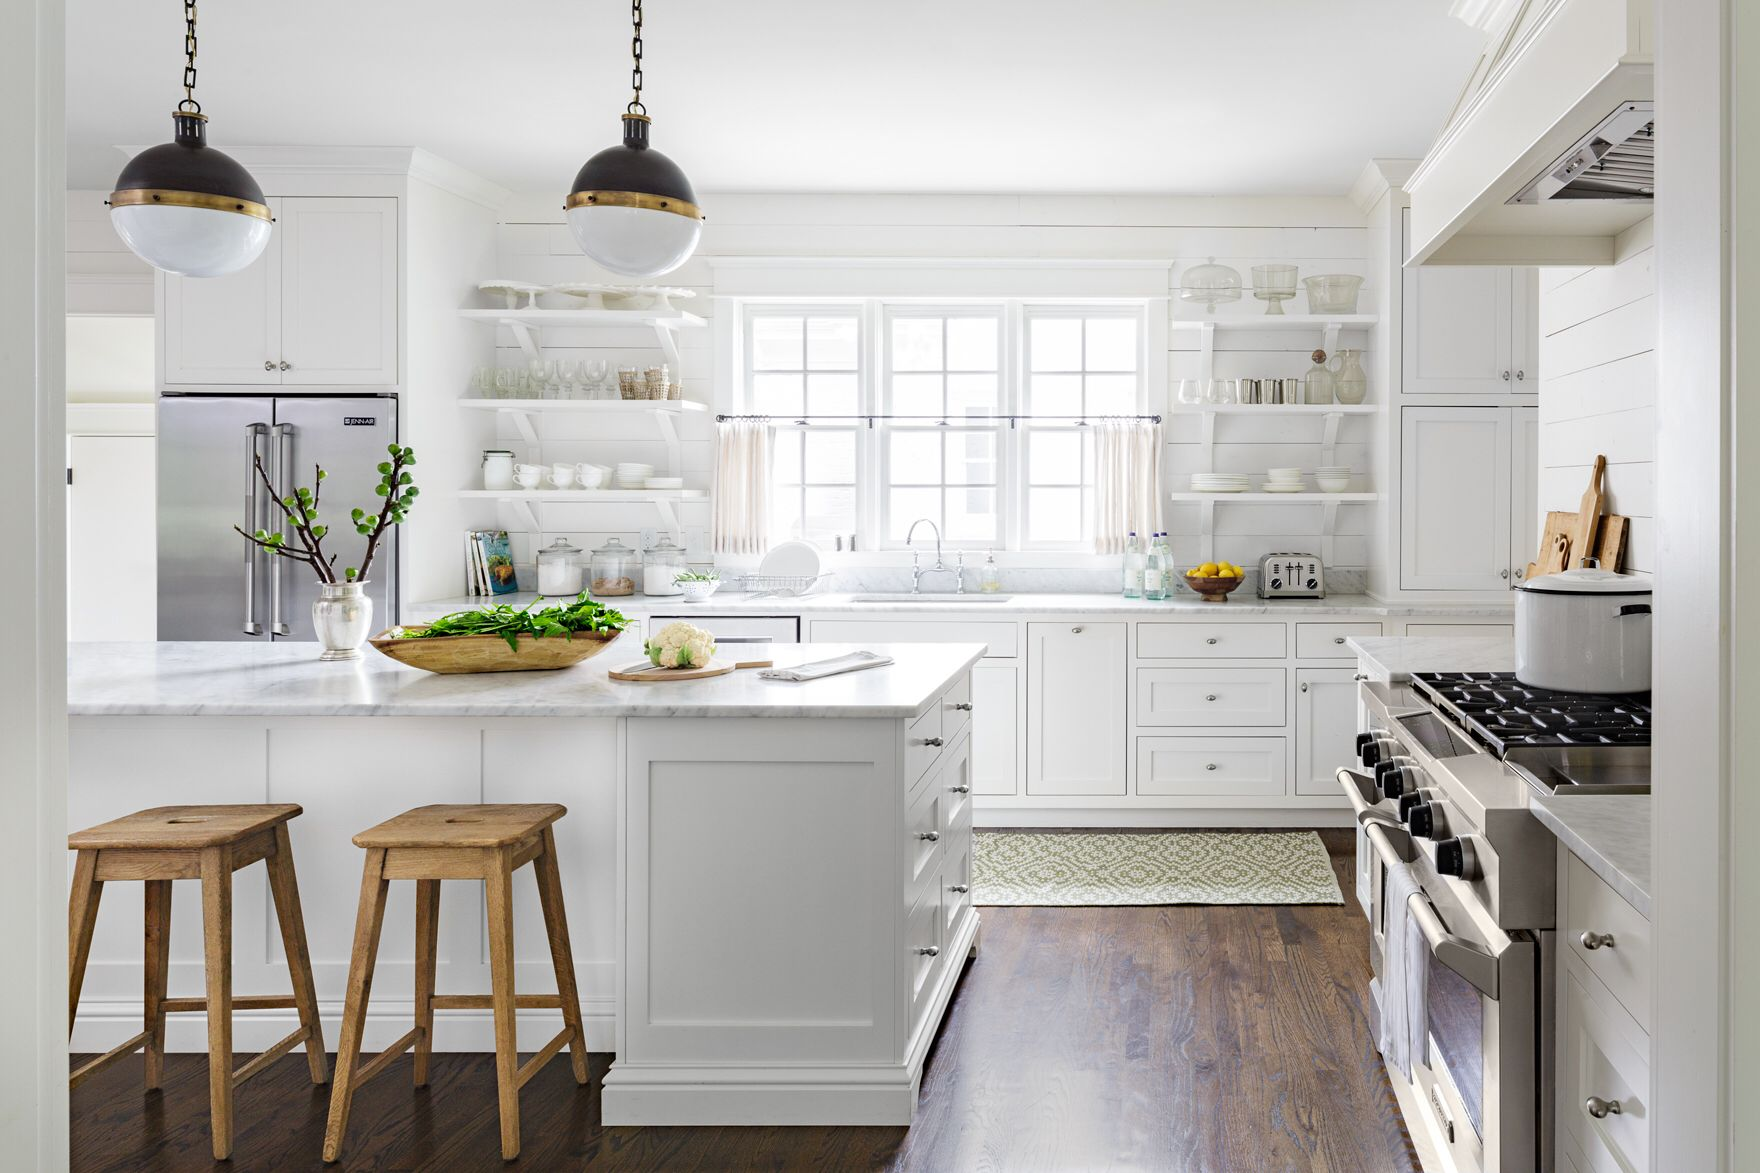 White Shiplap White paint is great for a beachy vibe, but